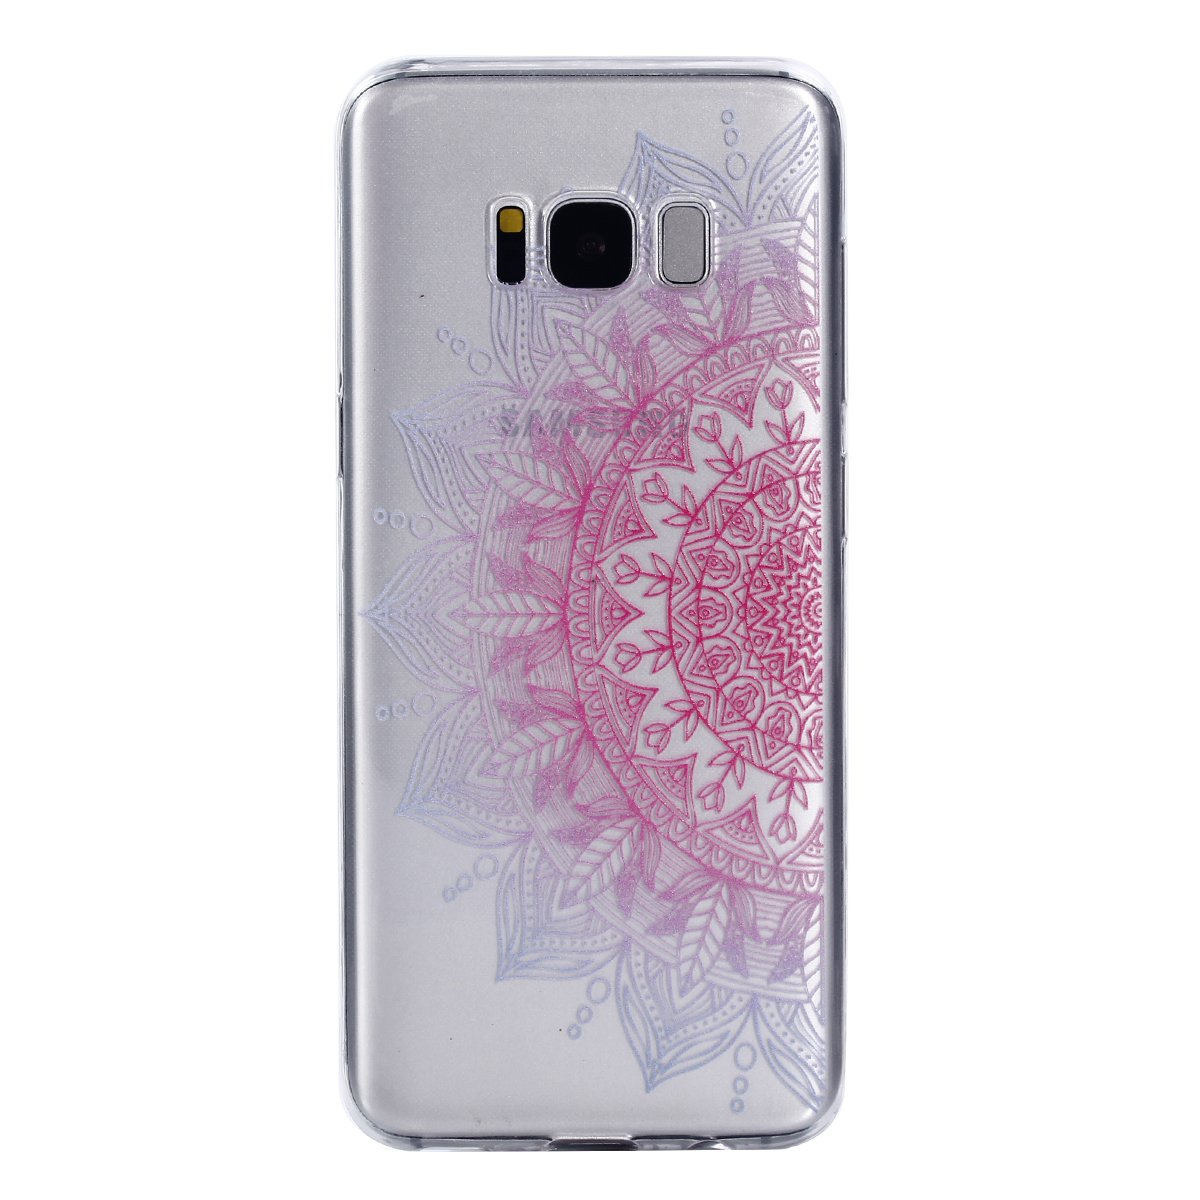 Coque Samsung Galaxy S8, Silicone Bumper souple pour Samsung Galaxy S8, BONROY Coque Samsung Galaxy S8 Housse Transparent Etui en Silicone Soft Clear TPU Case Cover Housse Souple de Protection Coque Ultra Mince Flexible Lisse Couverture Coquille Shell Skin